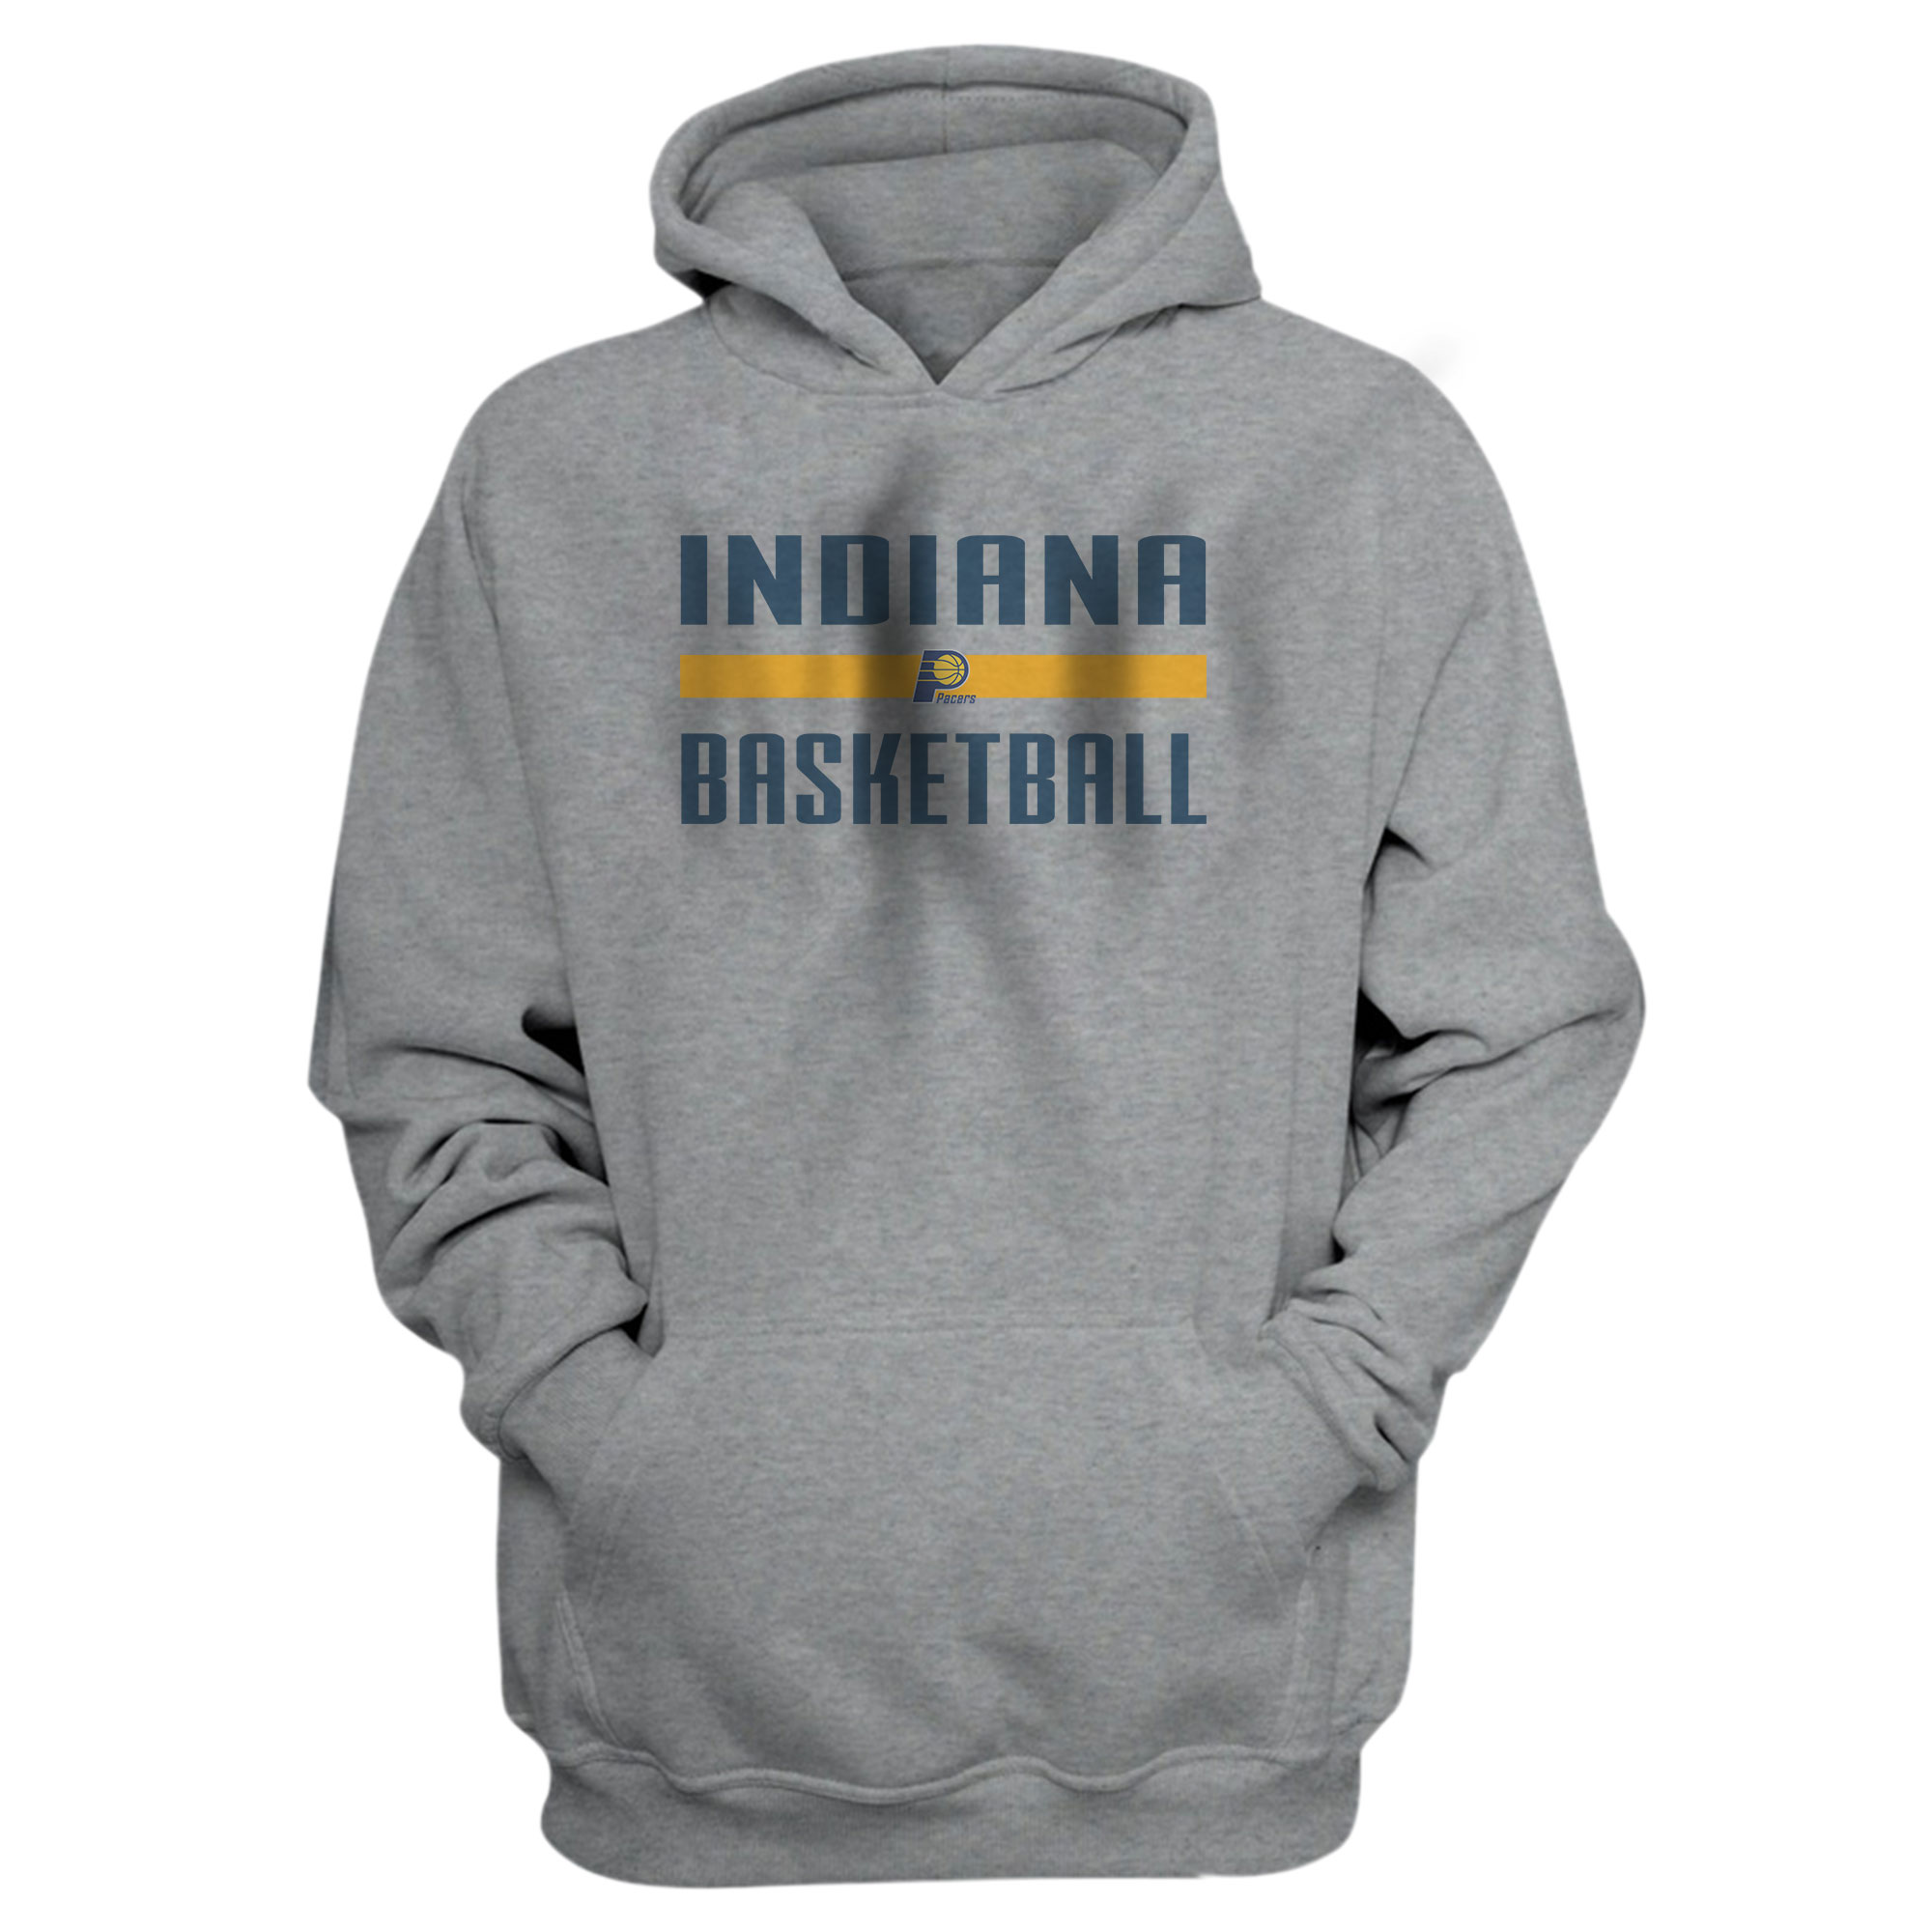 Indiana Basketball Hoodie (HD-GRY-NP-indiana-bsktbll-516)